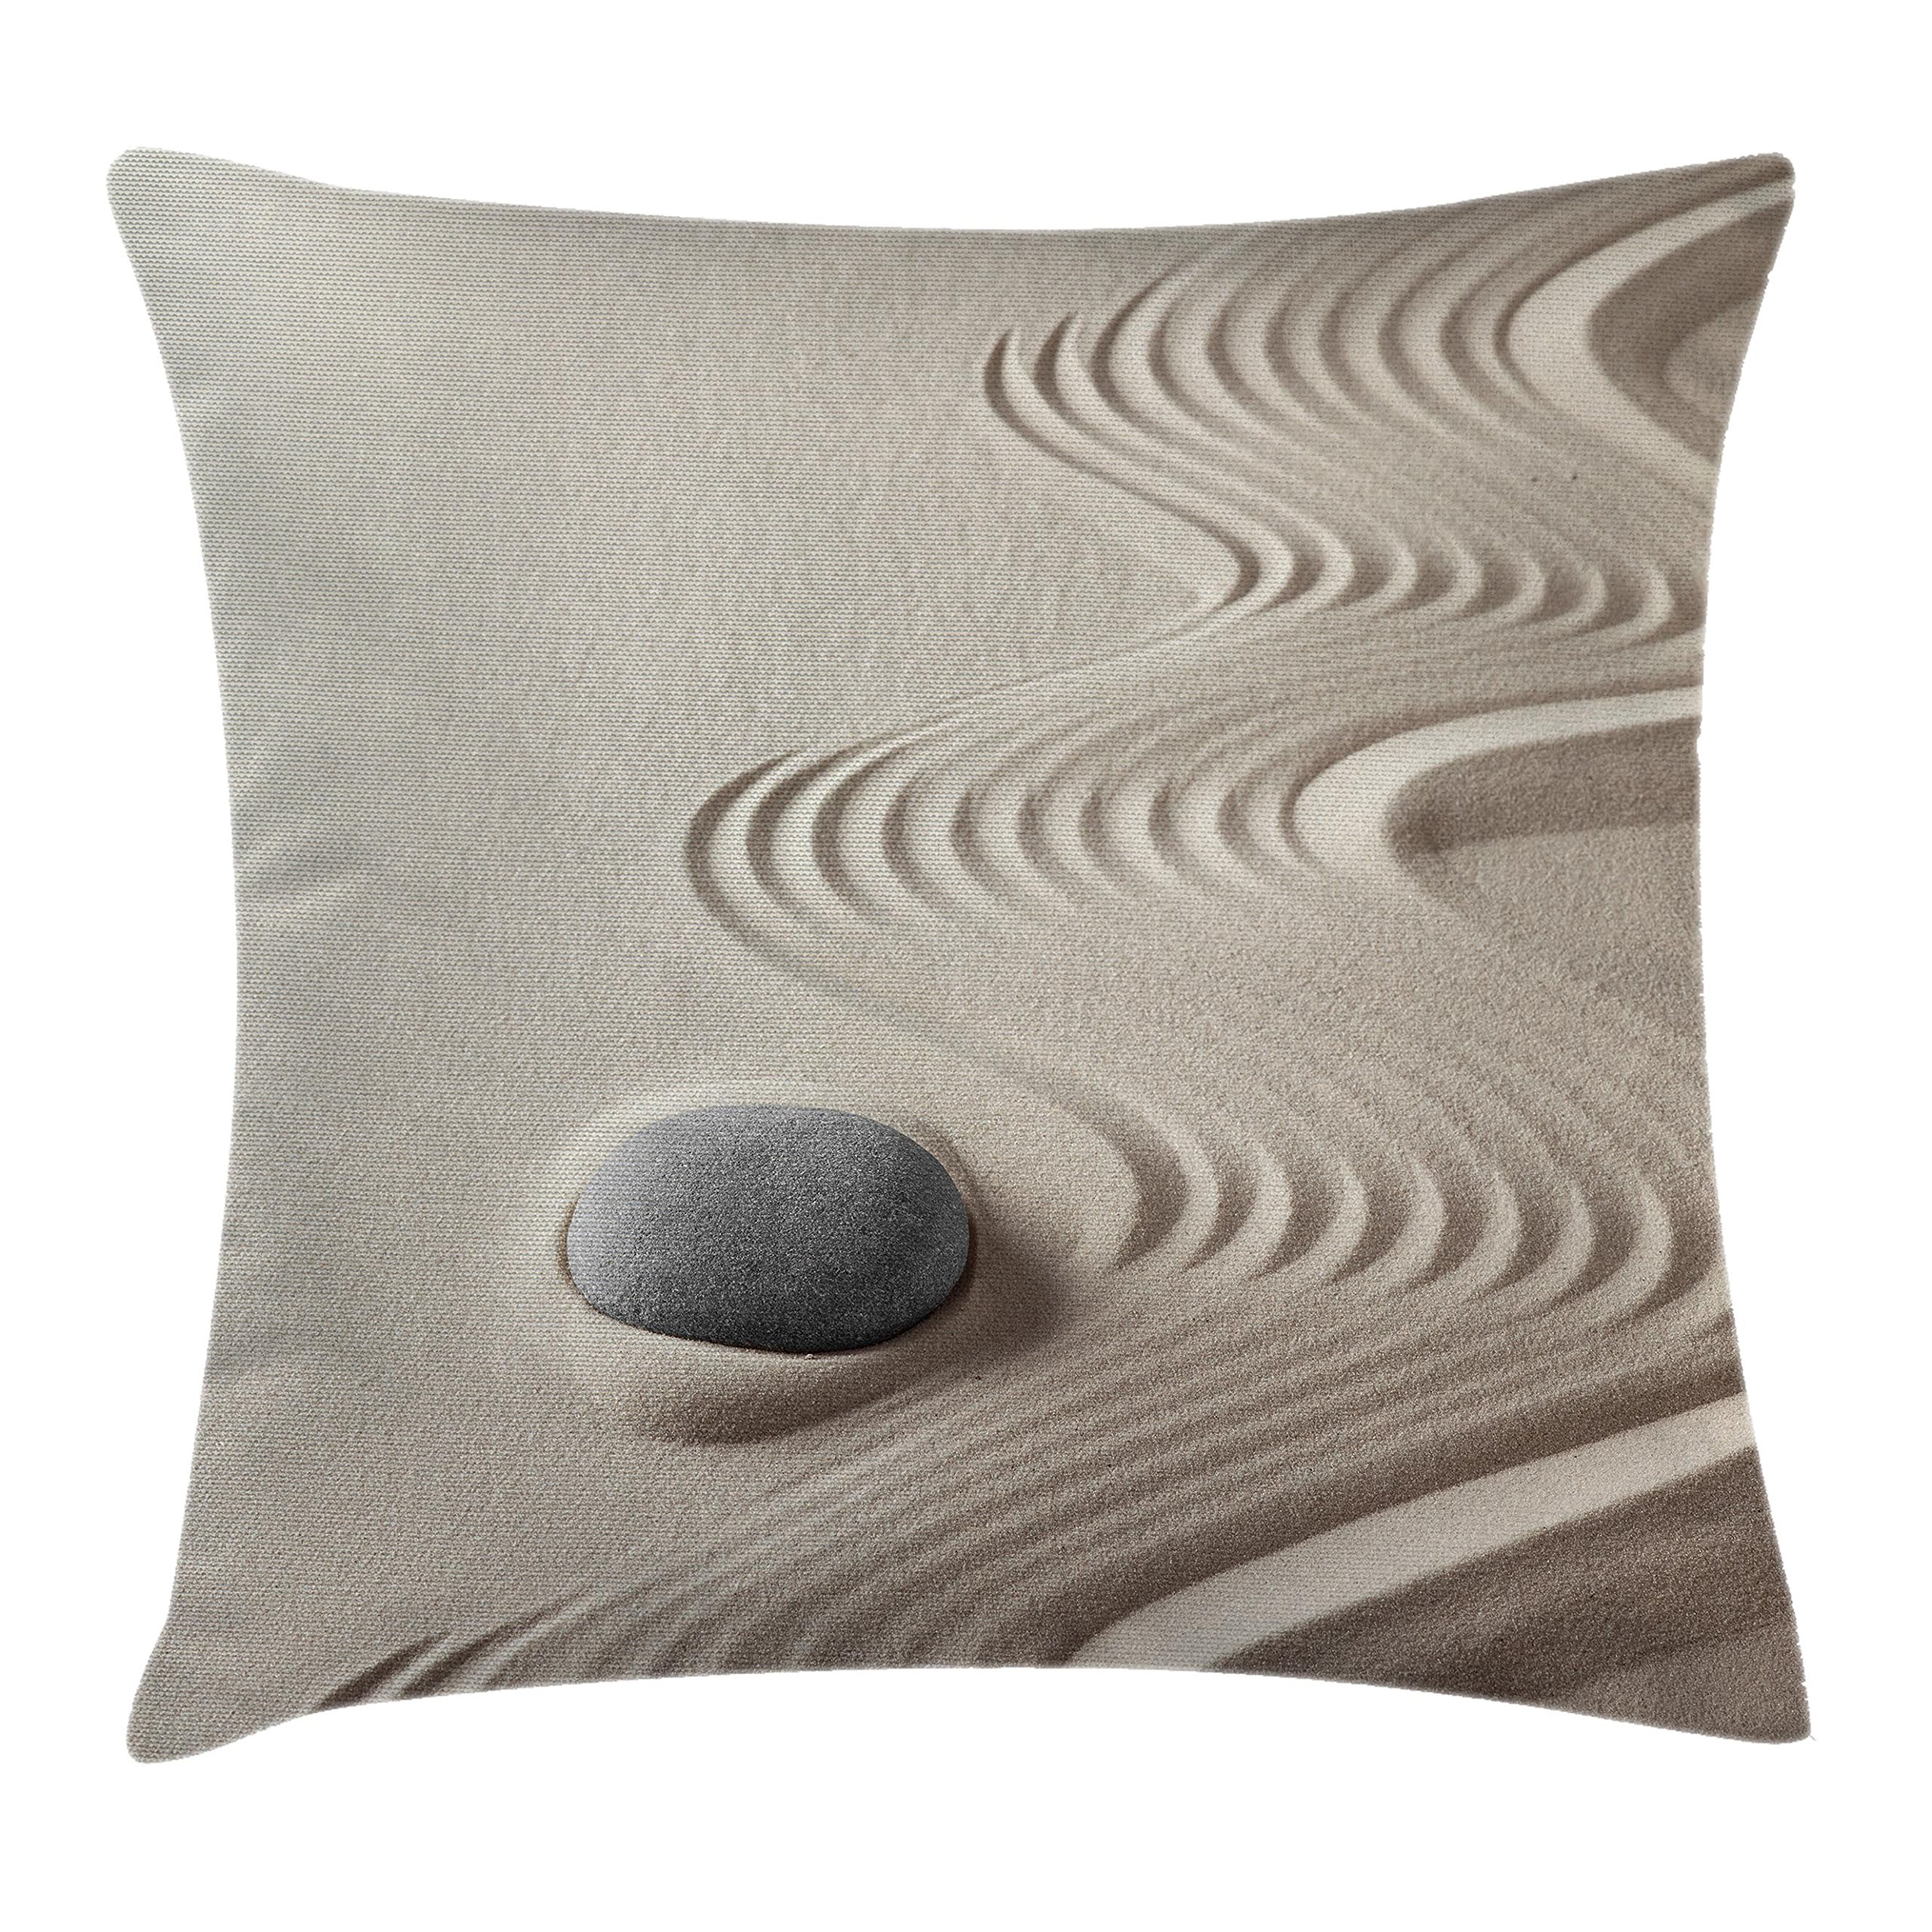 Lunarable Spa Throw Pillow Cushion Cover, The Caribbean White Sand in Shaped Like Waves Near a Grey Zen Stones Work of Art, Decorative Square Accent Pillow Case, 26 X 26 inches, Beige and Grey